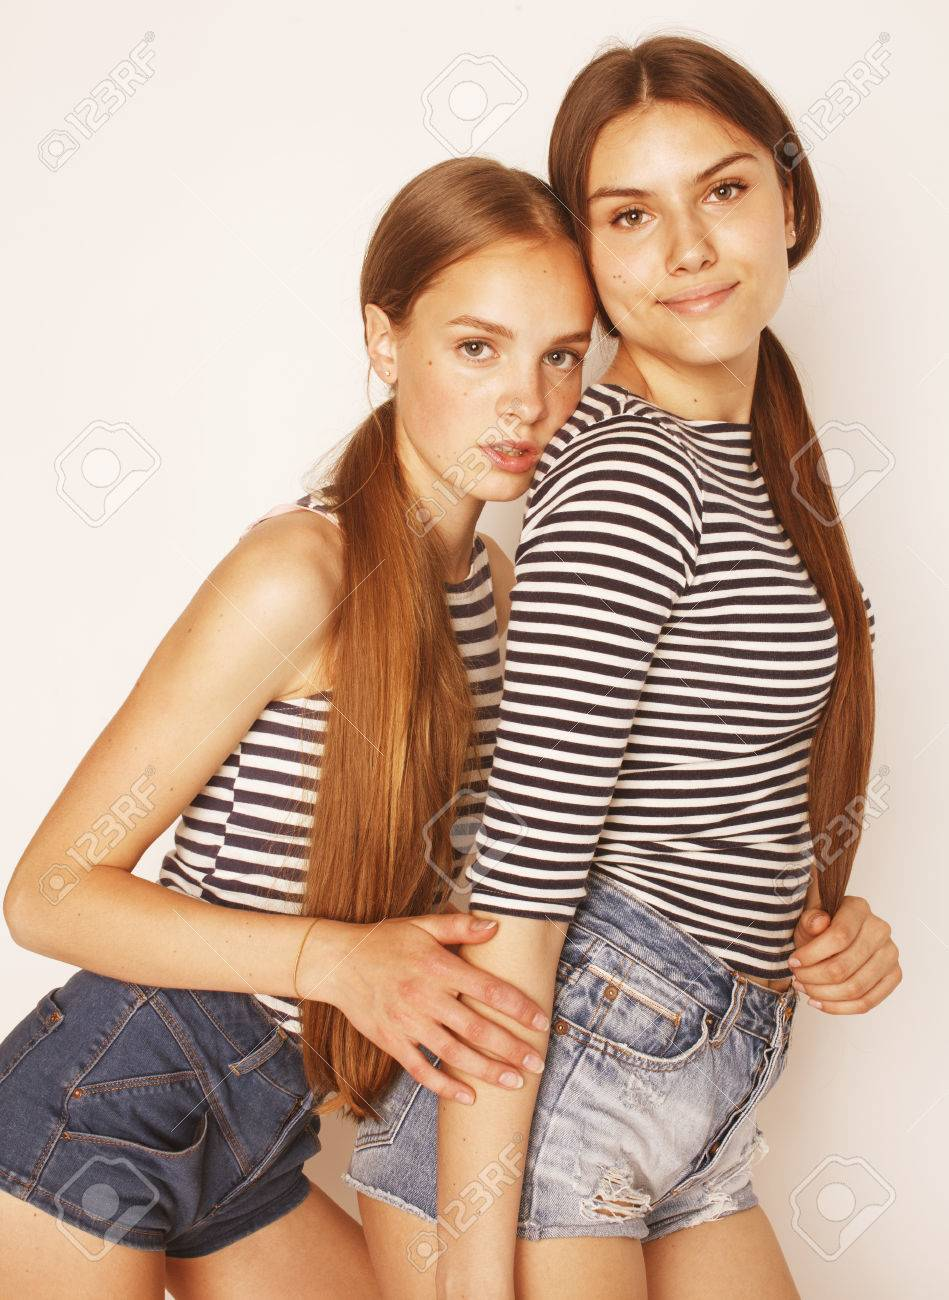 Cute Teenagers two cute teenagers having fun together isolated on white, girls